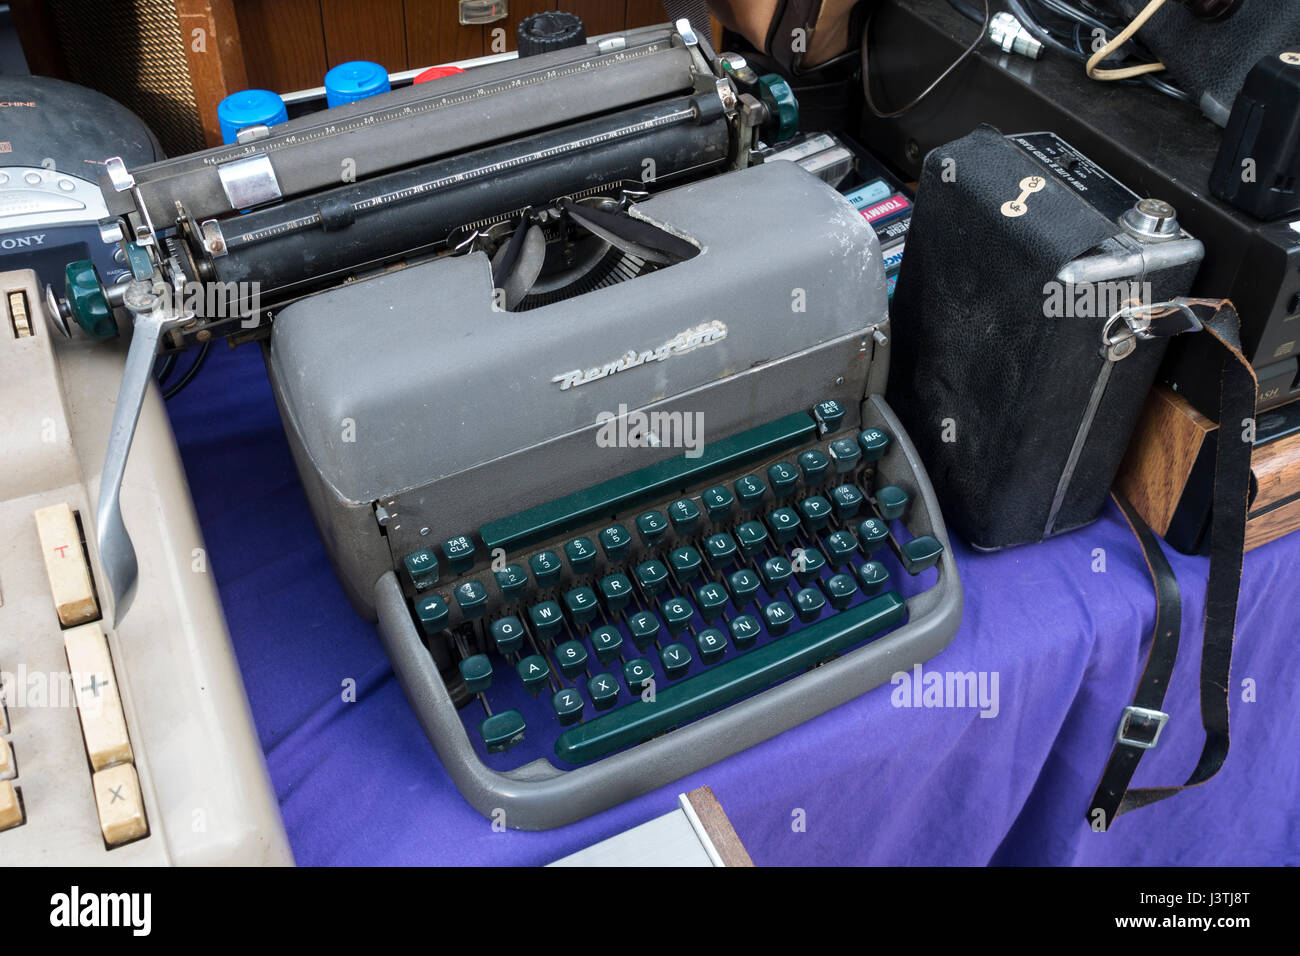 A used Remington manual typewriter at a secondhand items sale - Stock Image